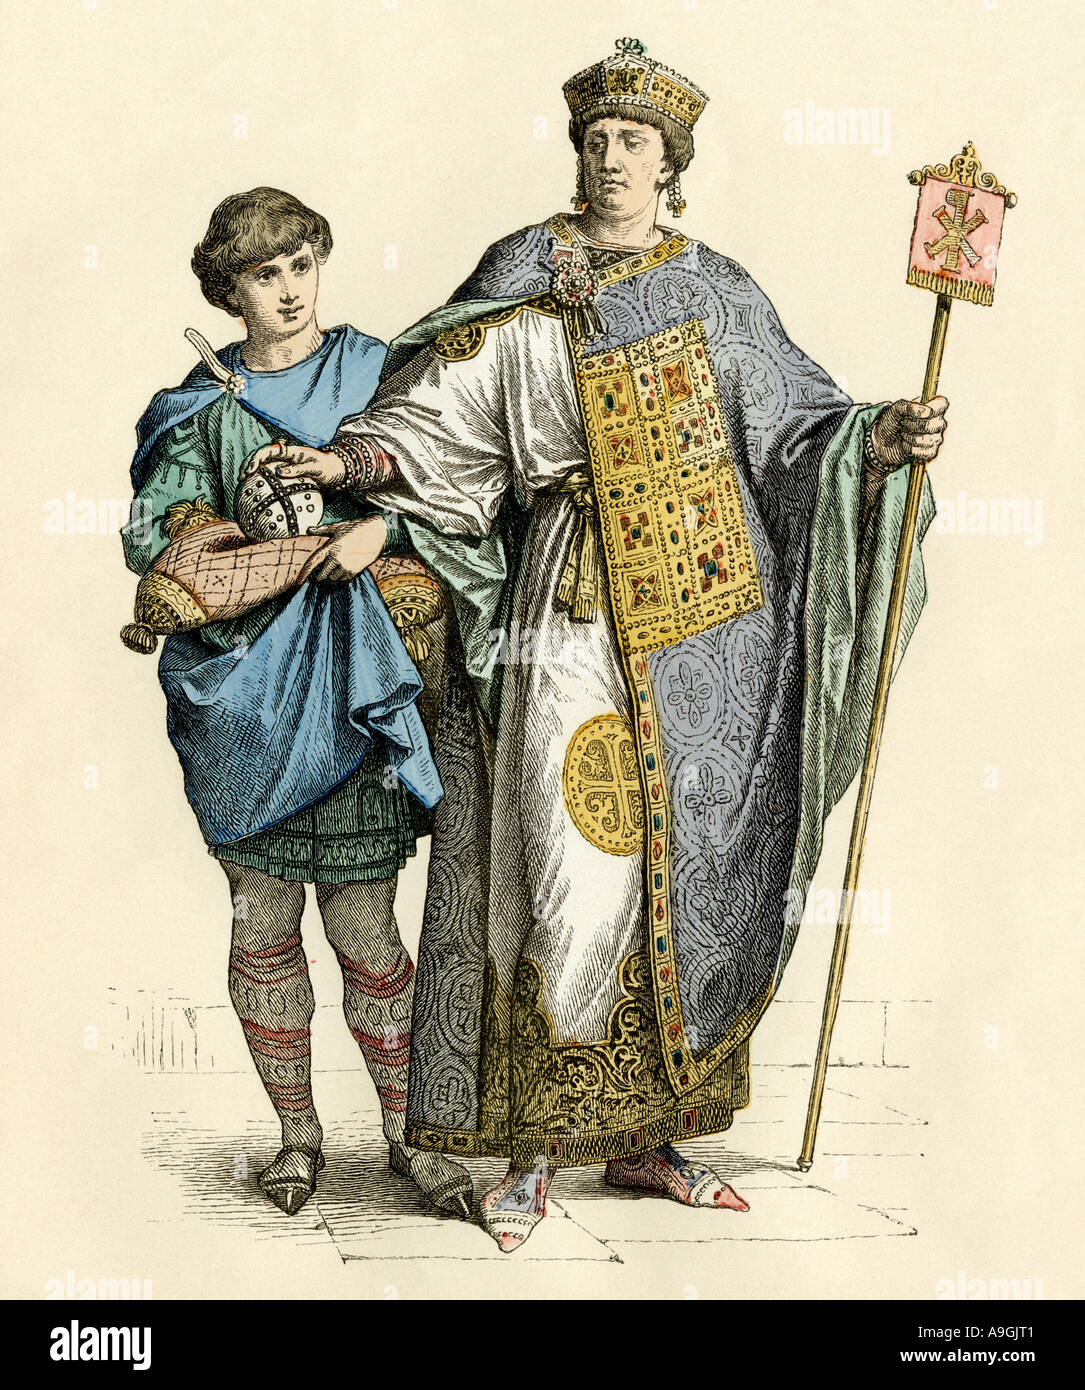 Byzantine emperor and his attendant. Hand-colored print - Stock Image